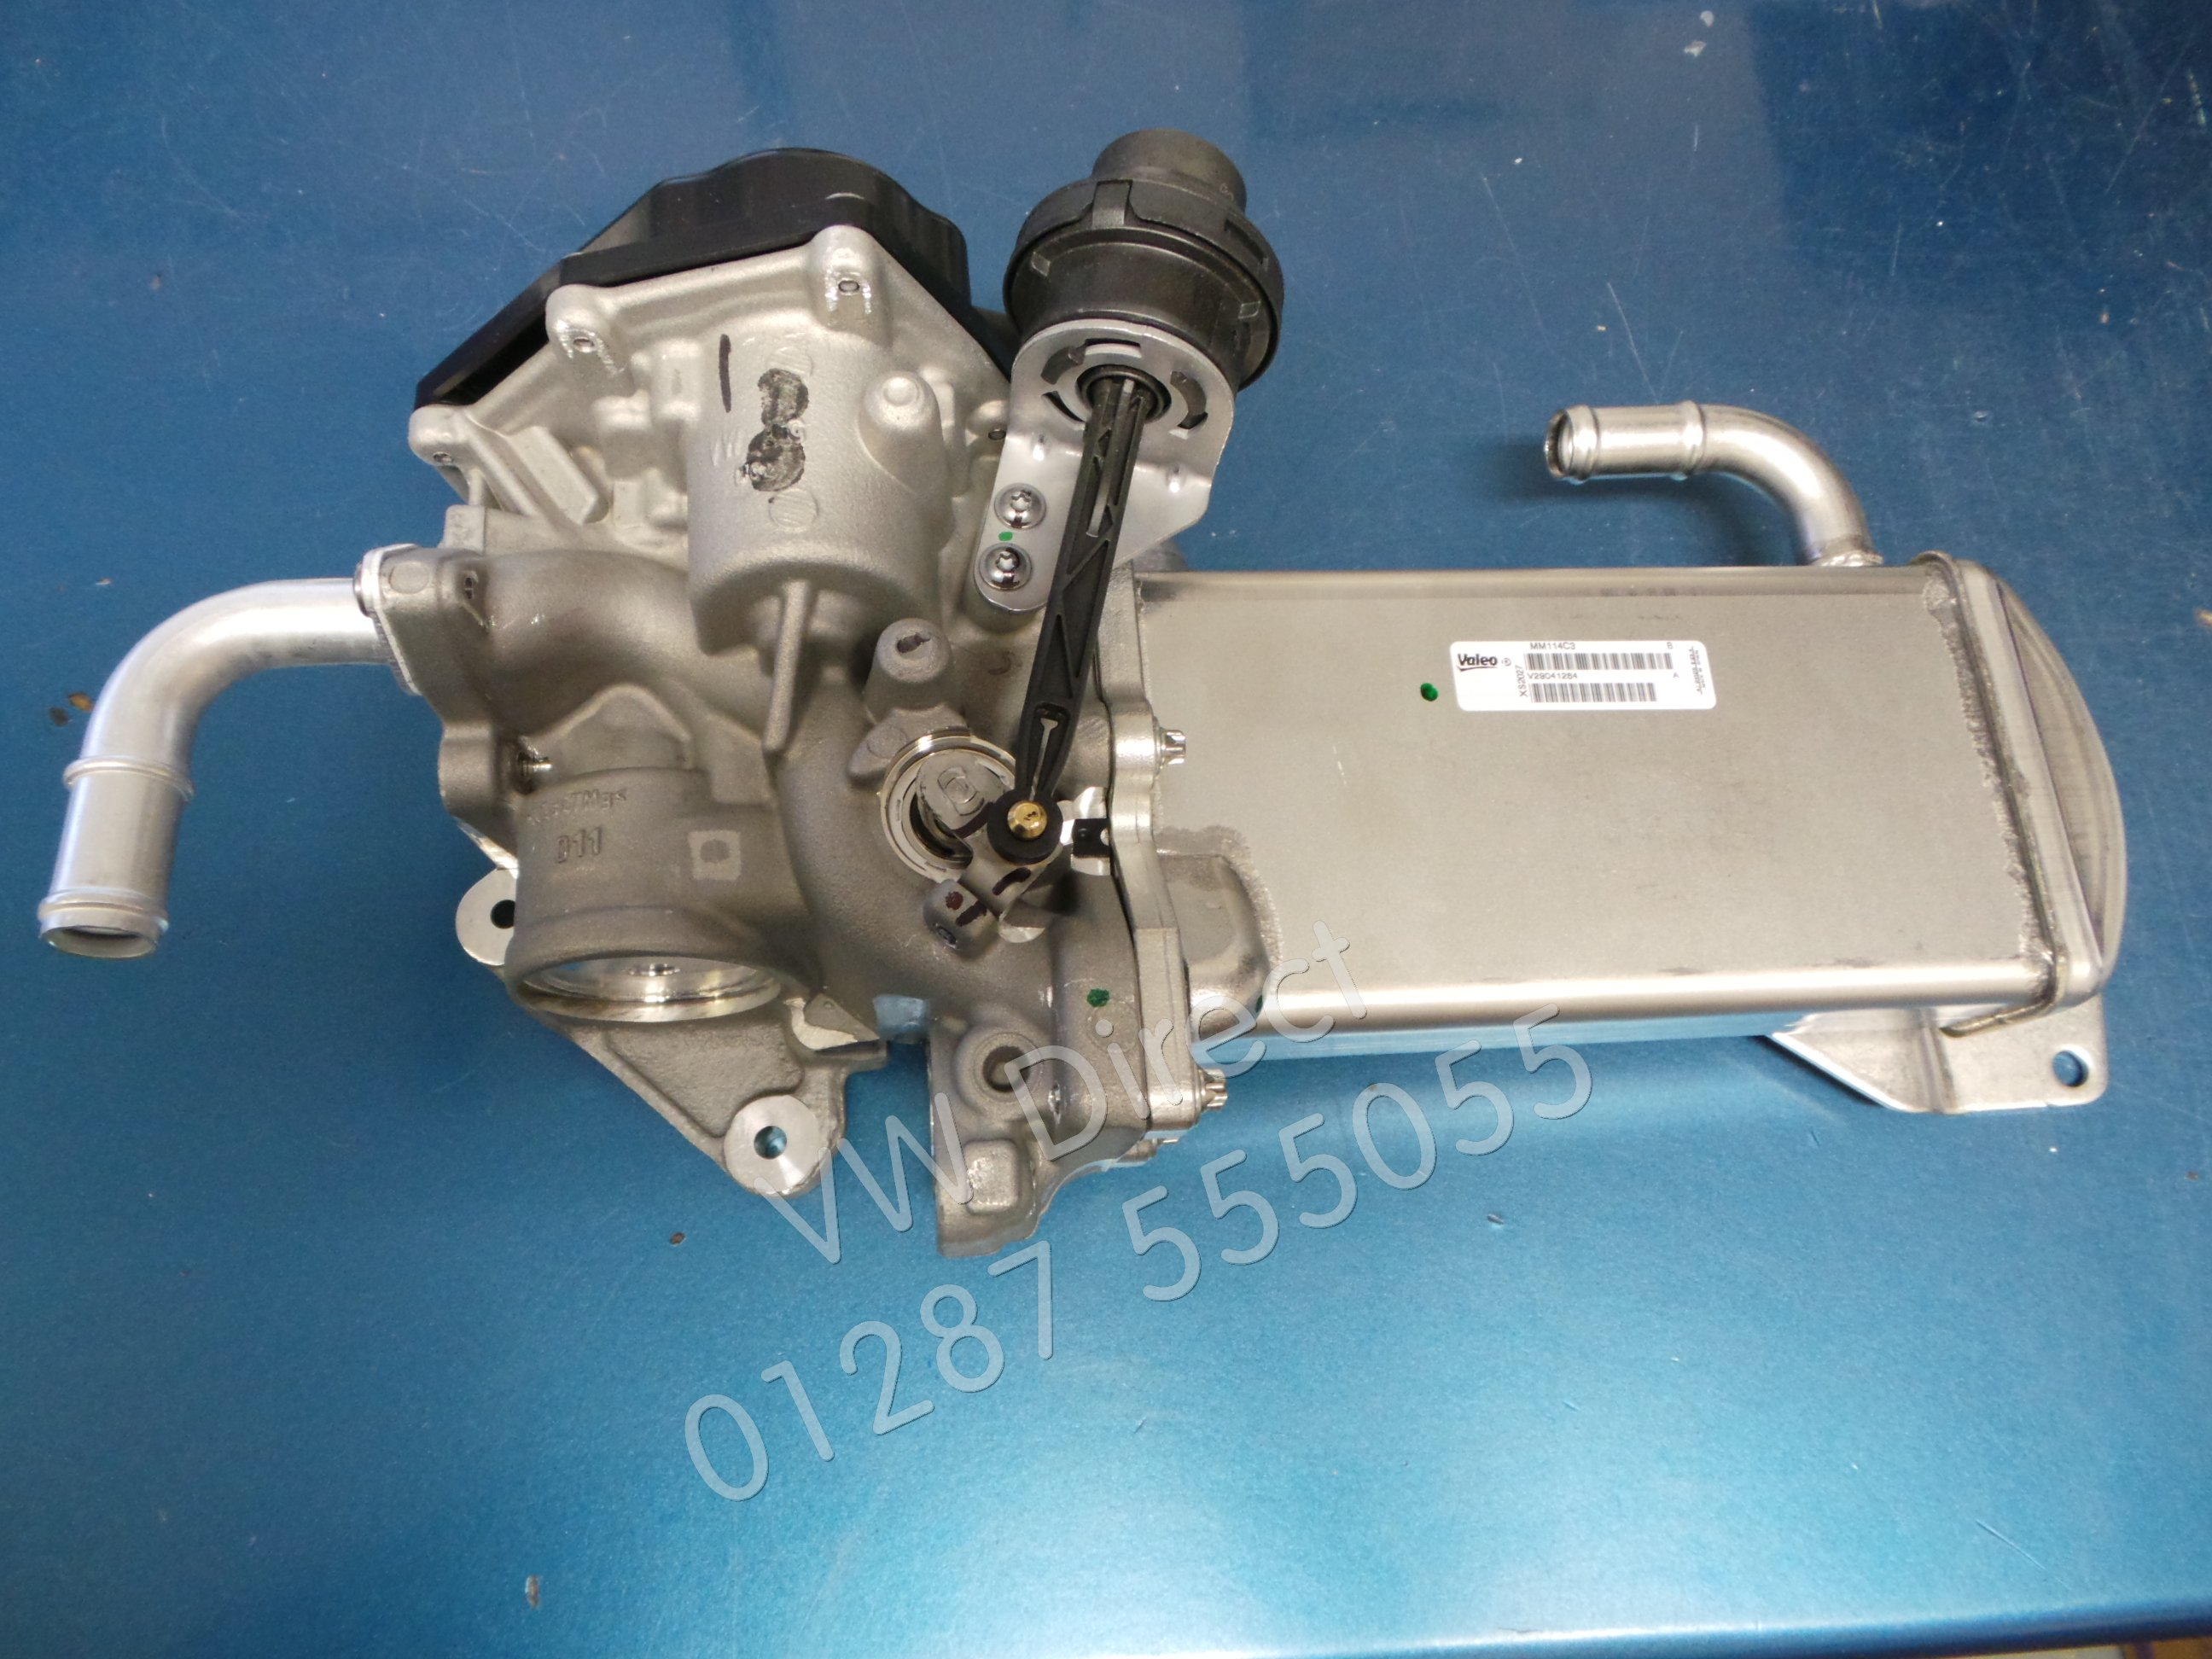 Details about Genuine VW Transporter Caravelle T5 T6 EGR Exhaust  Recirculation Valve & Cooler